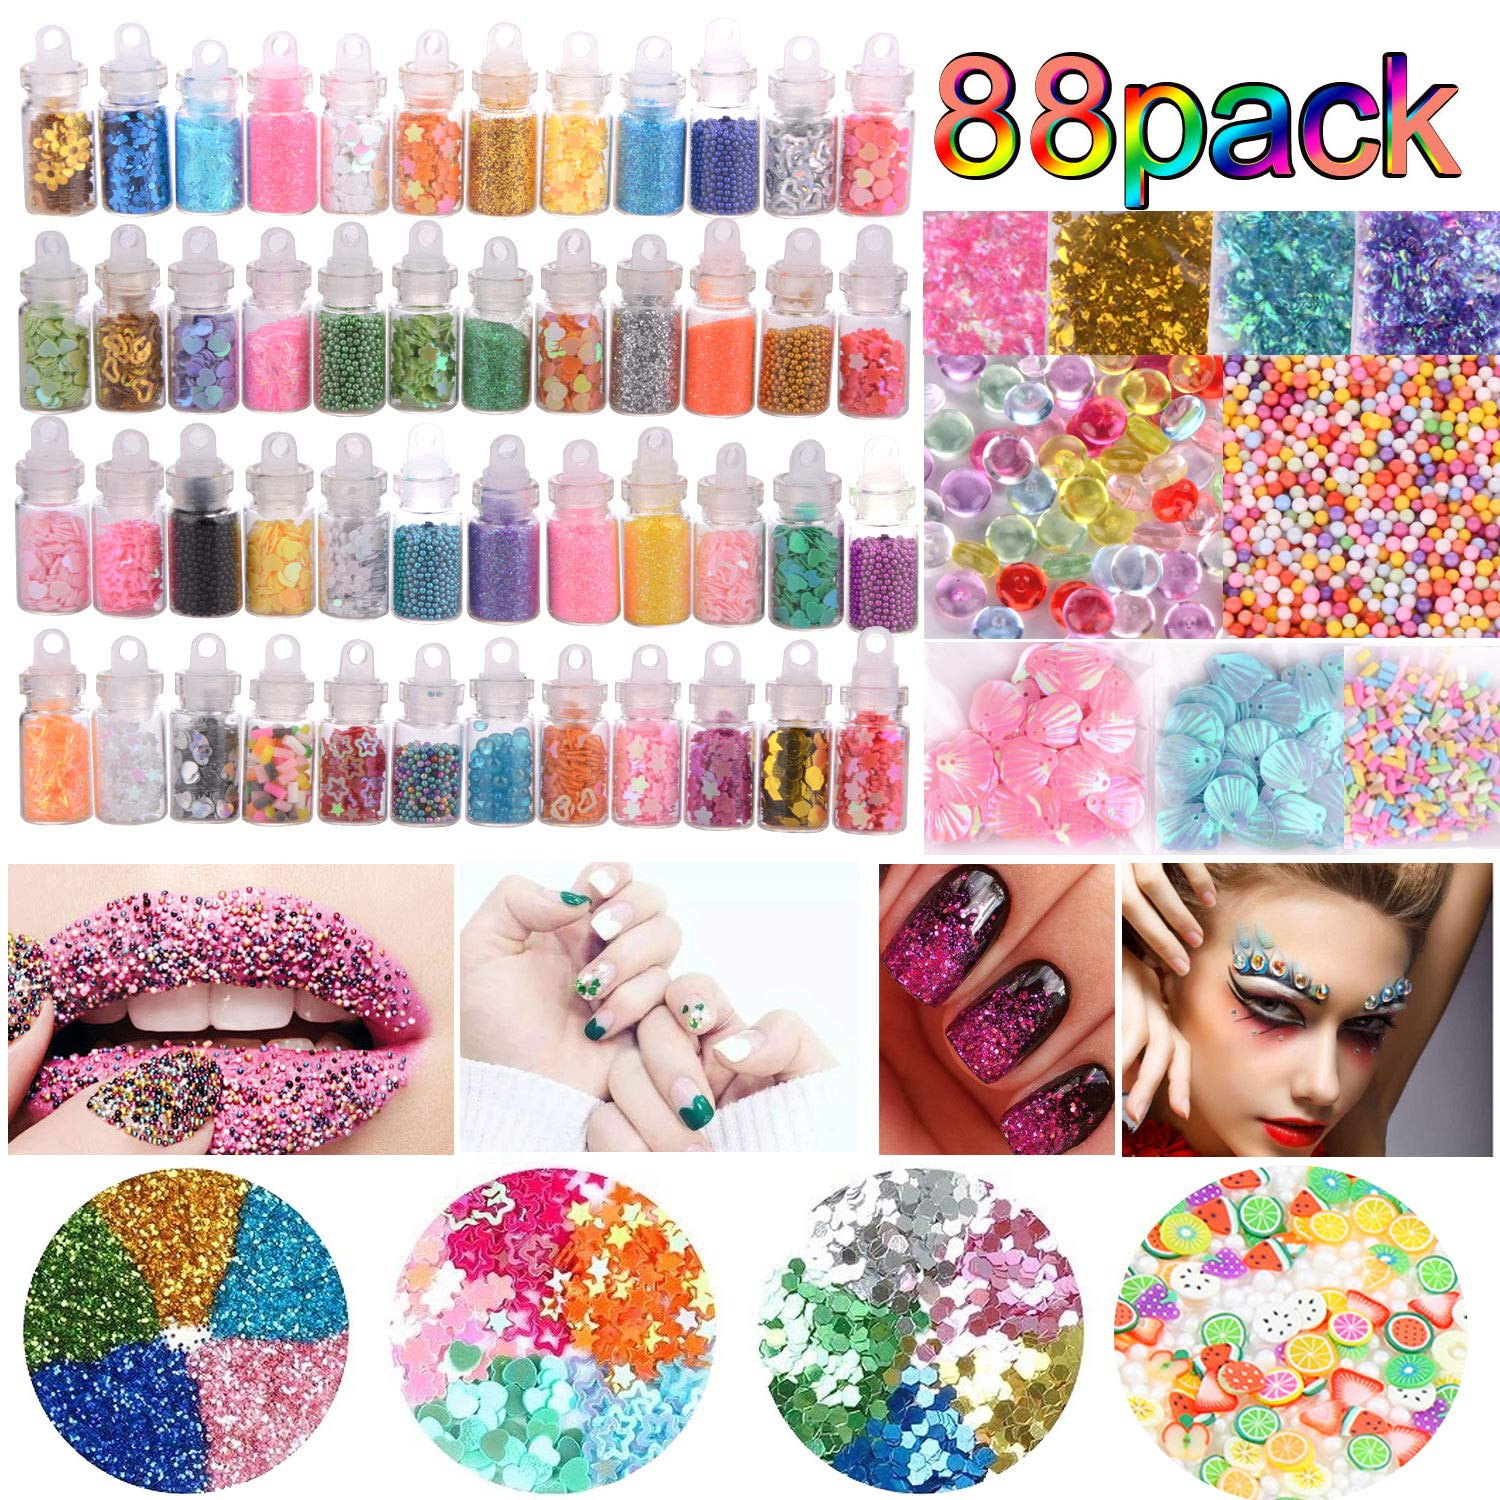 Slime Supplies Kit 88 Pack, Colorful Slime Beads Charms, Foam Balls, Glitter Jars, Fruit Slices, Fishbowl Beads for Slime Making DIY Craft, Girl Slime Party, Kids Toys Decoration DOOLLAND